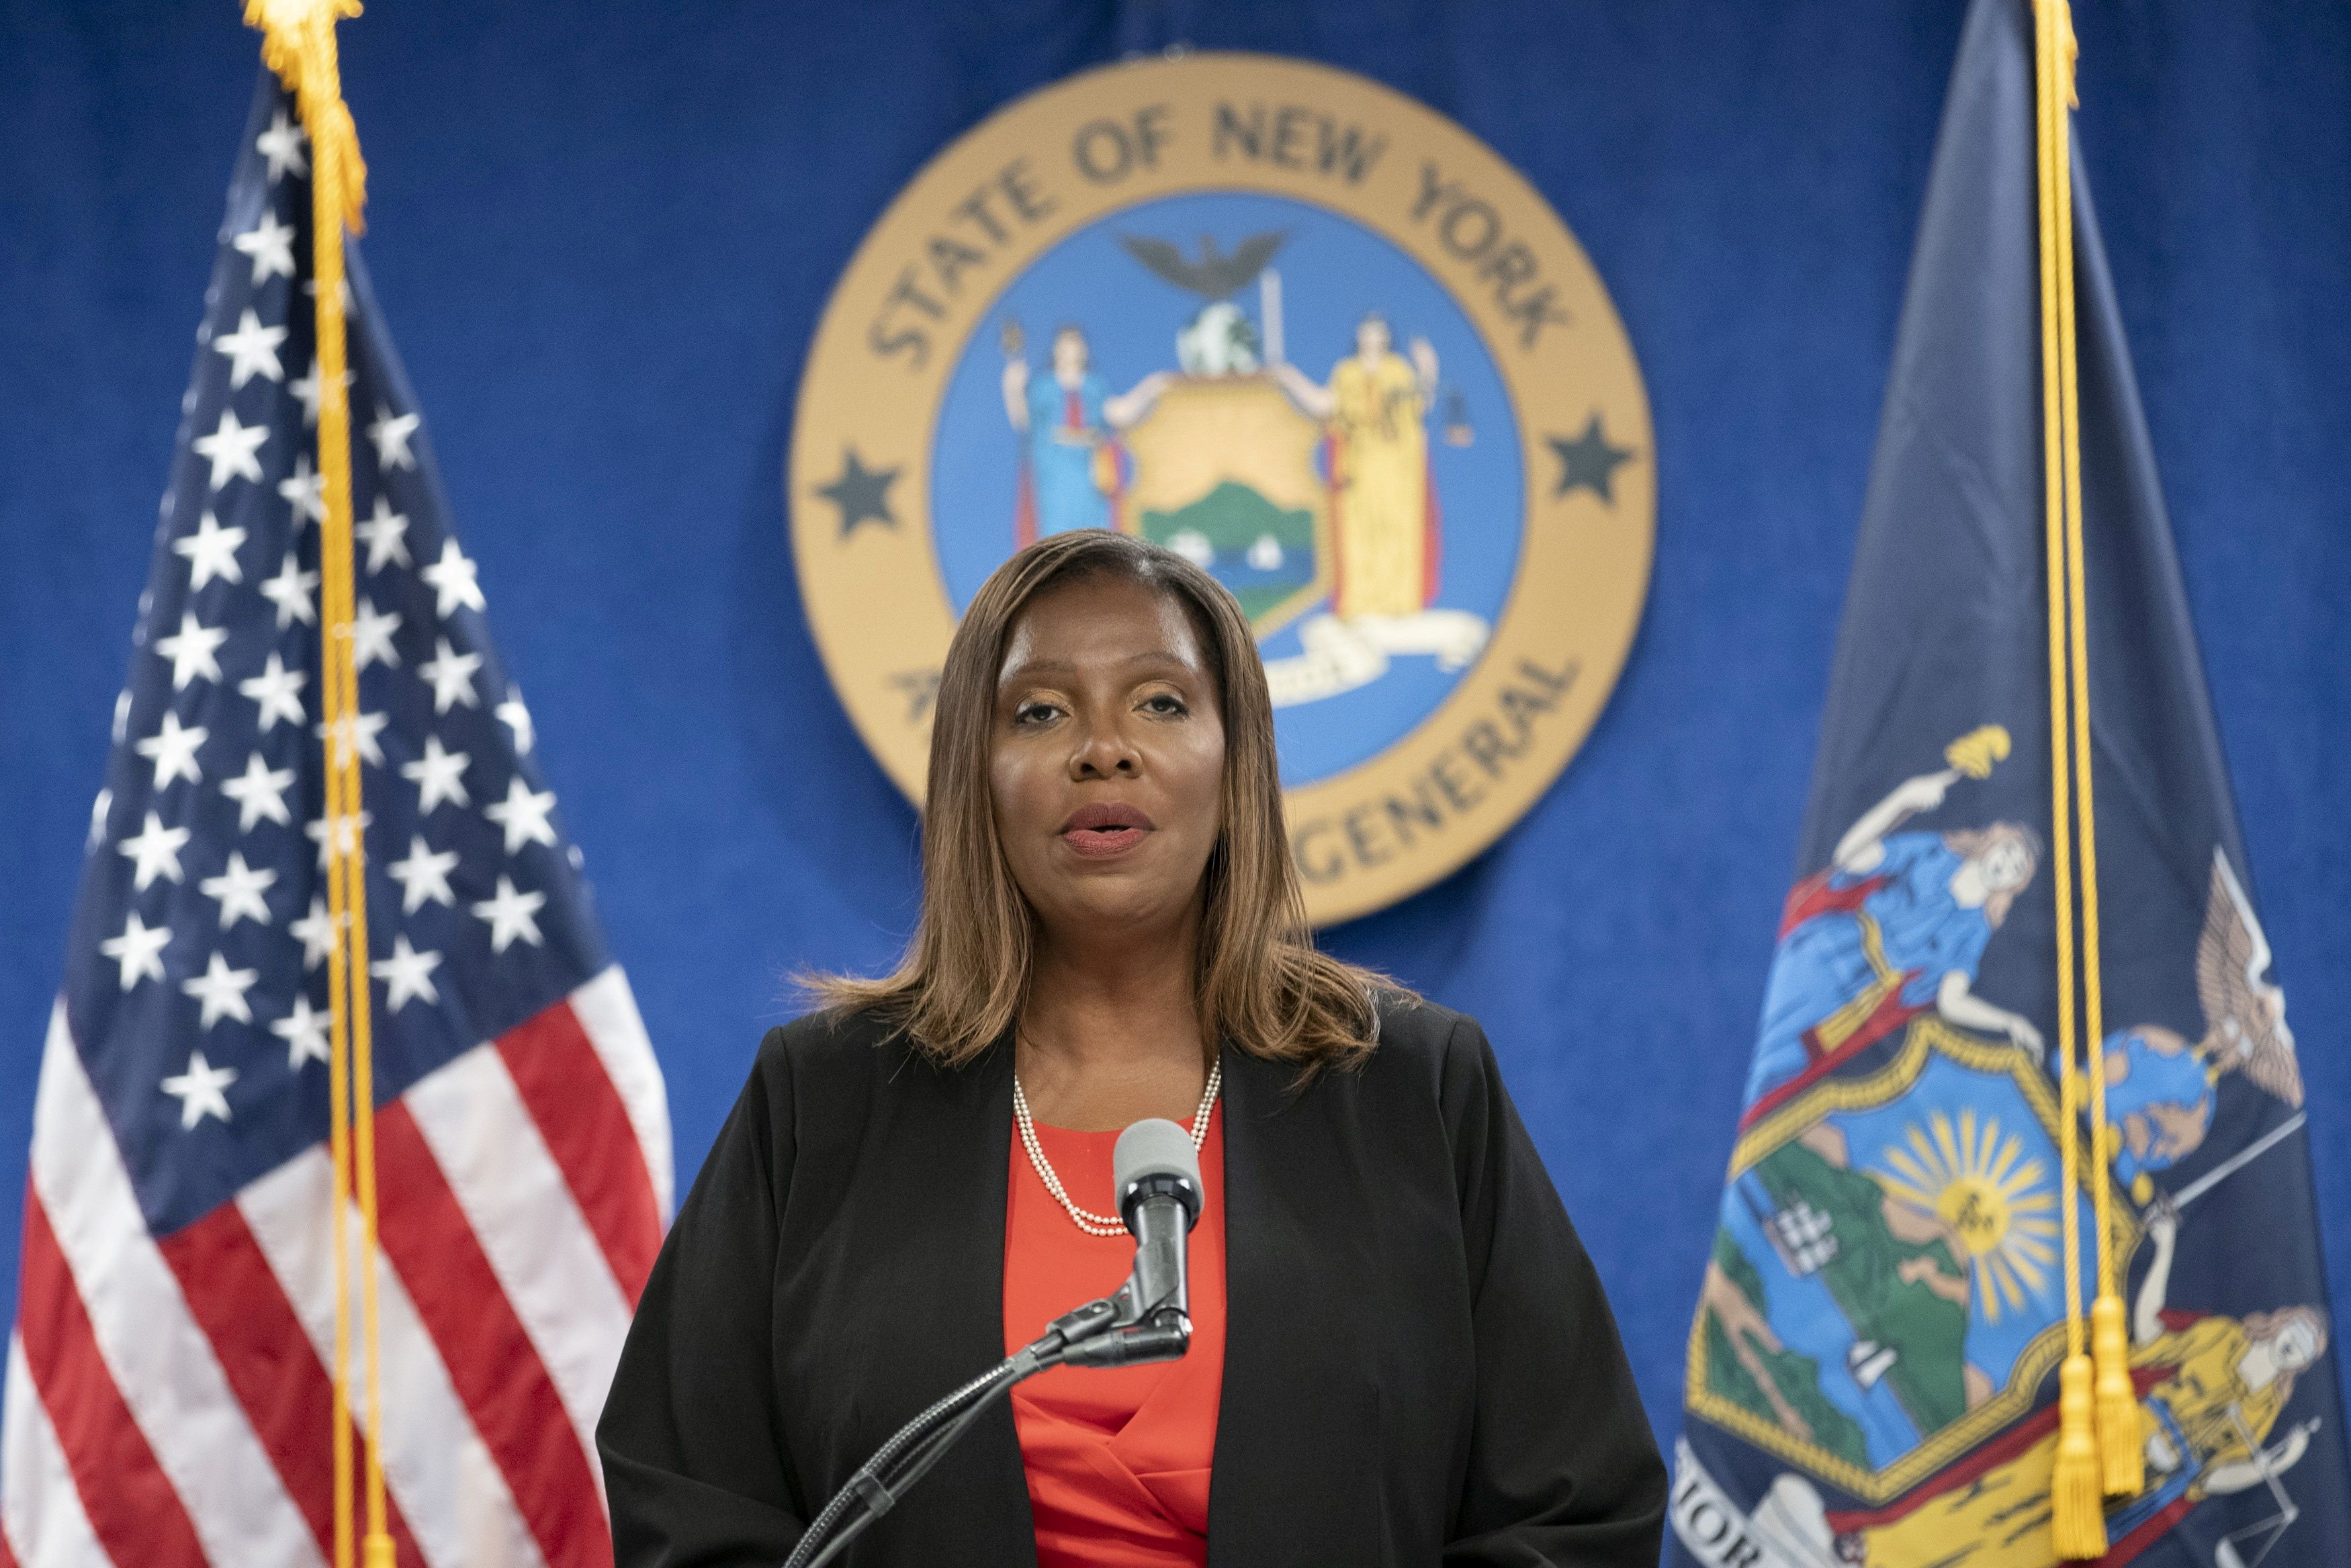 New York State Attorney General, Letitia James, speaks during a news conference at her office in New York City, New York, U.S., August 3, 2021. REUTERS/Eduardo Munoz